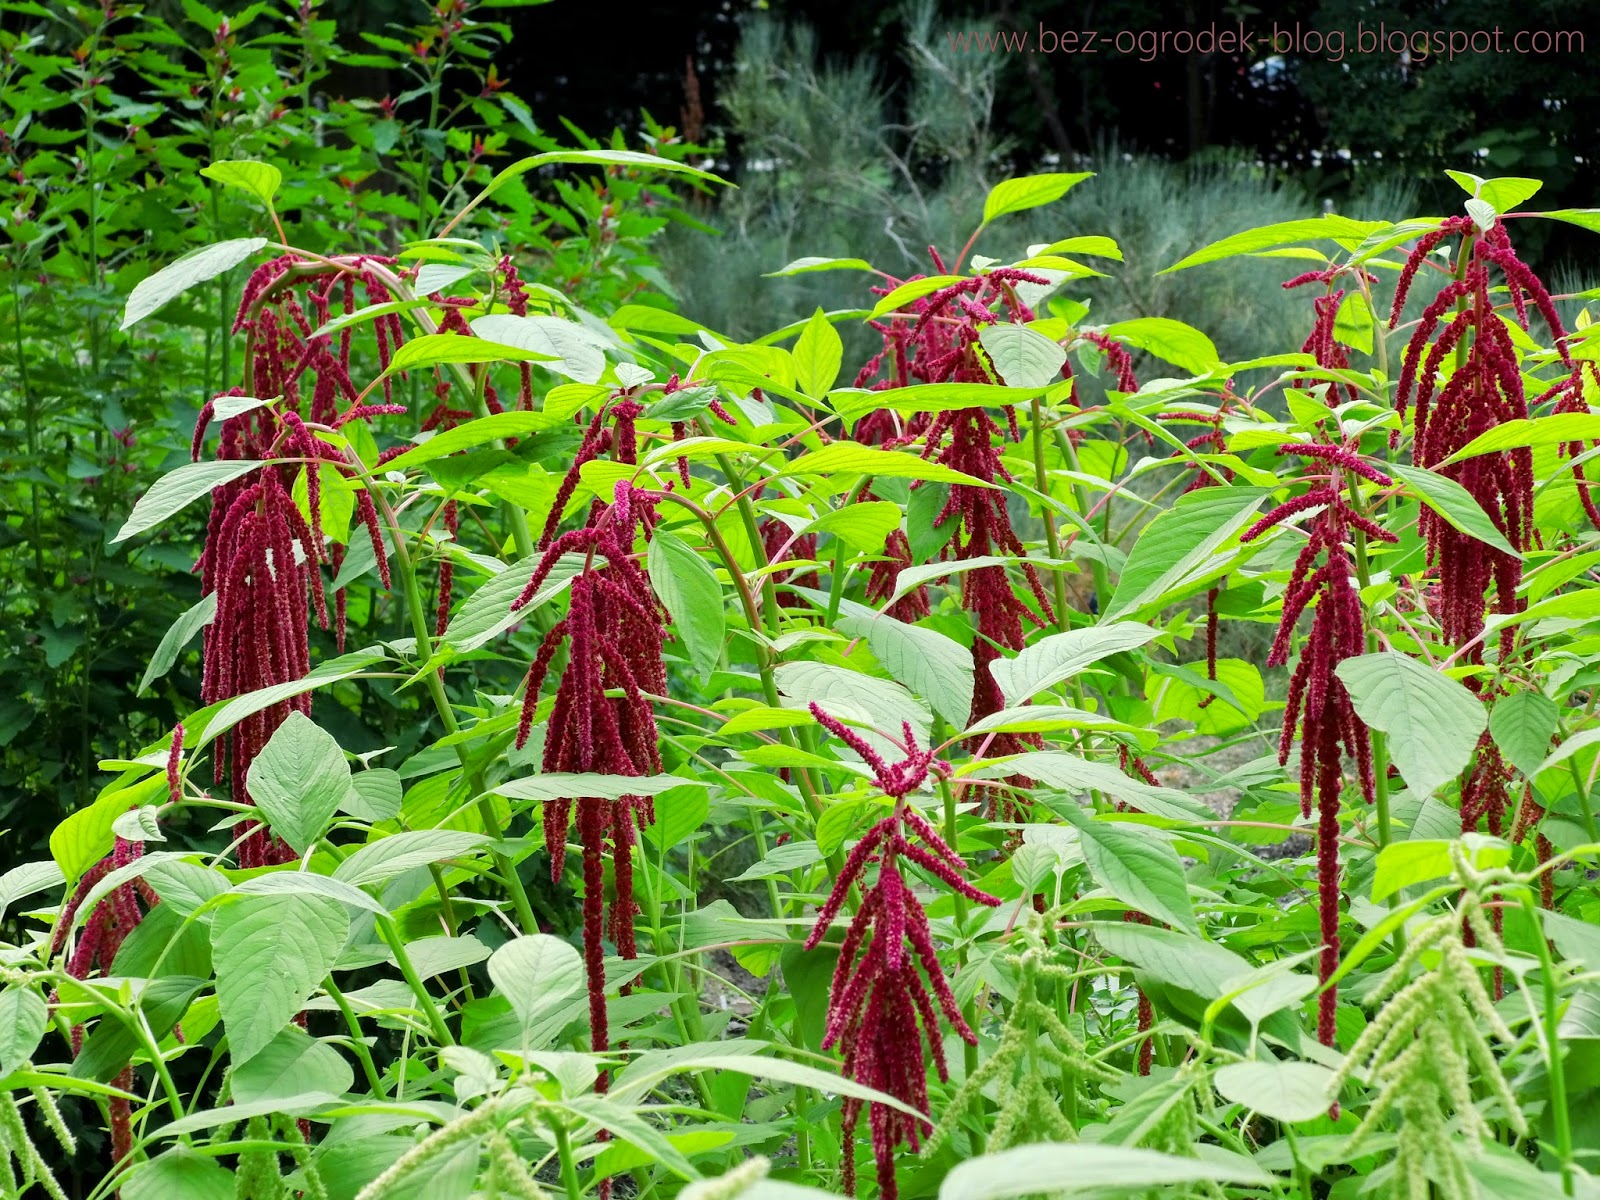 amaranthus flowers in the color of the year